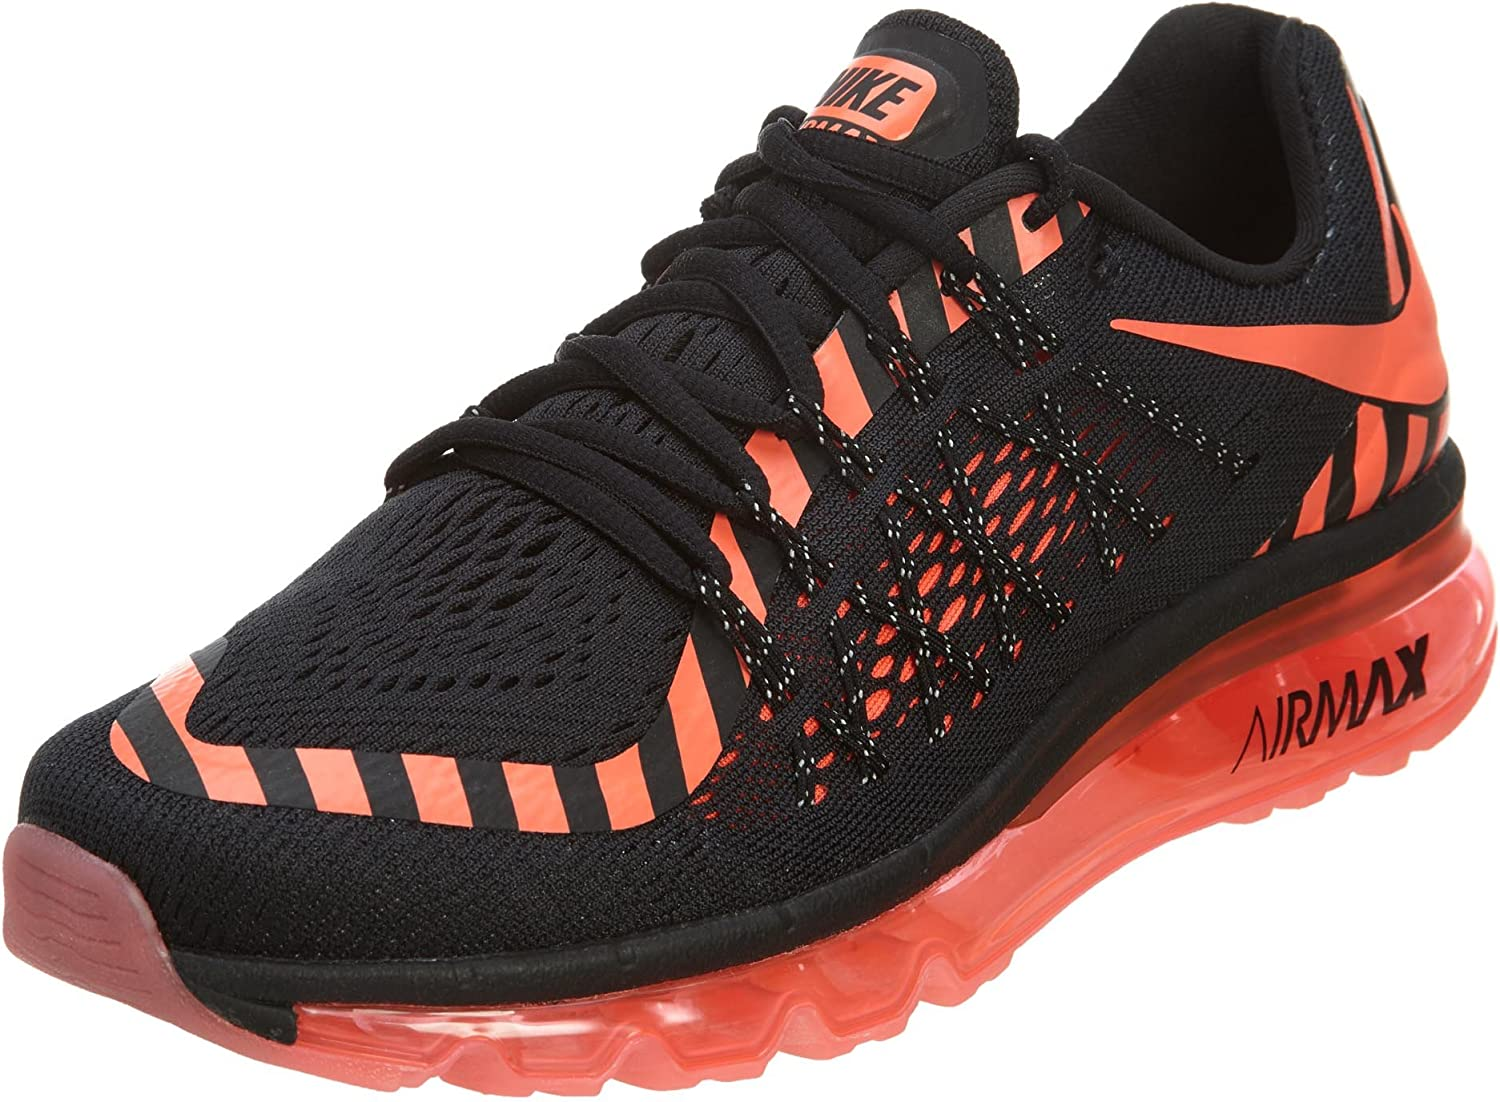 Nike 746683 011 Air Max 2015 Nr Womens Sneakers Nikeblack Hot Lava Dark Grey Noirm Road Running